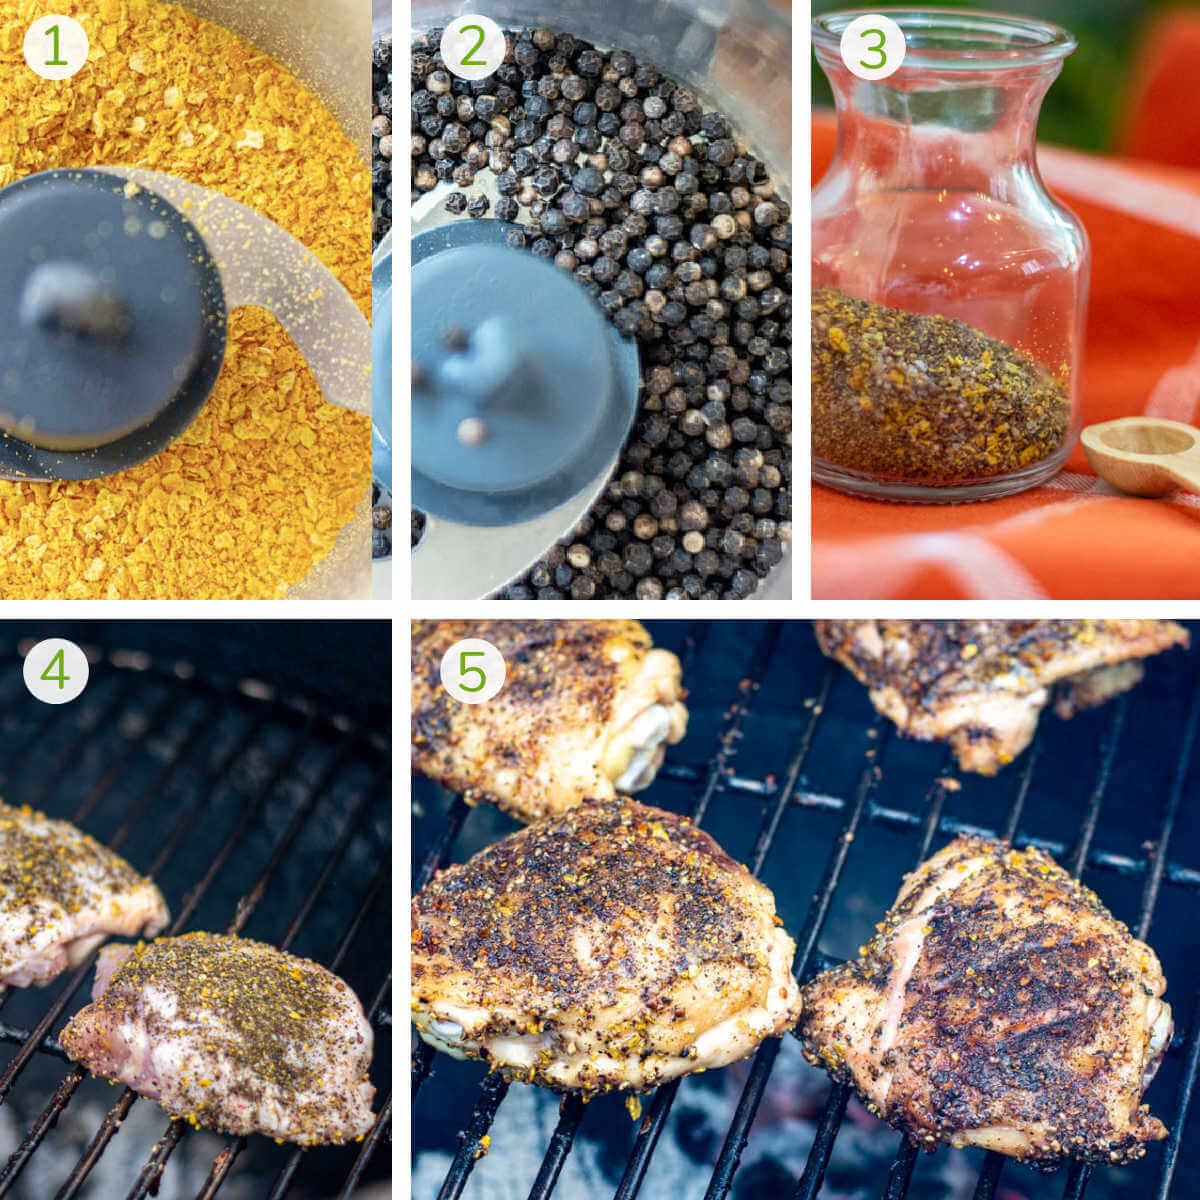 process photos showing how to make the seasoning in a food processor and then adding it to chicken and grilling.